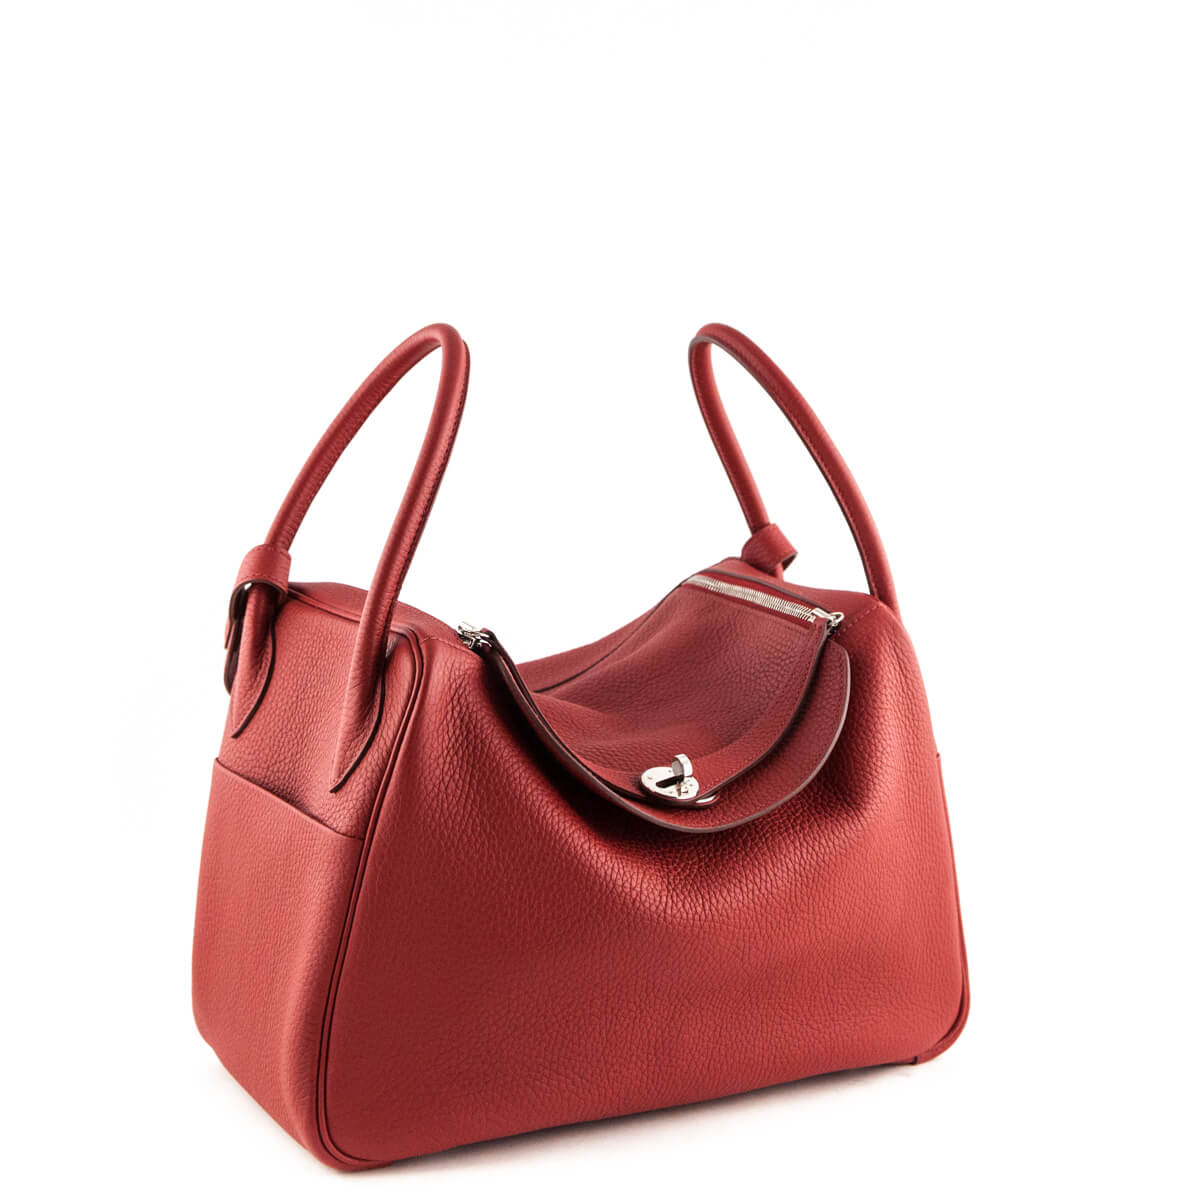 257e00257f0954 ... Hermes Rouge Garance Clemence Lindy 34 - LOVE that BAG - Preowned  Authentic Designer Handbags ...